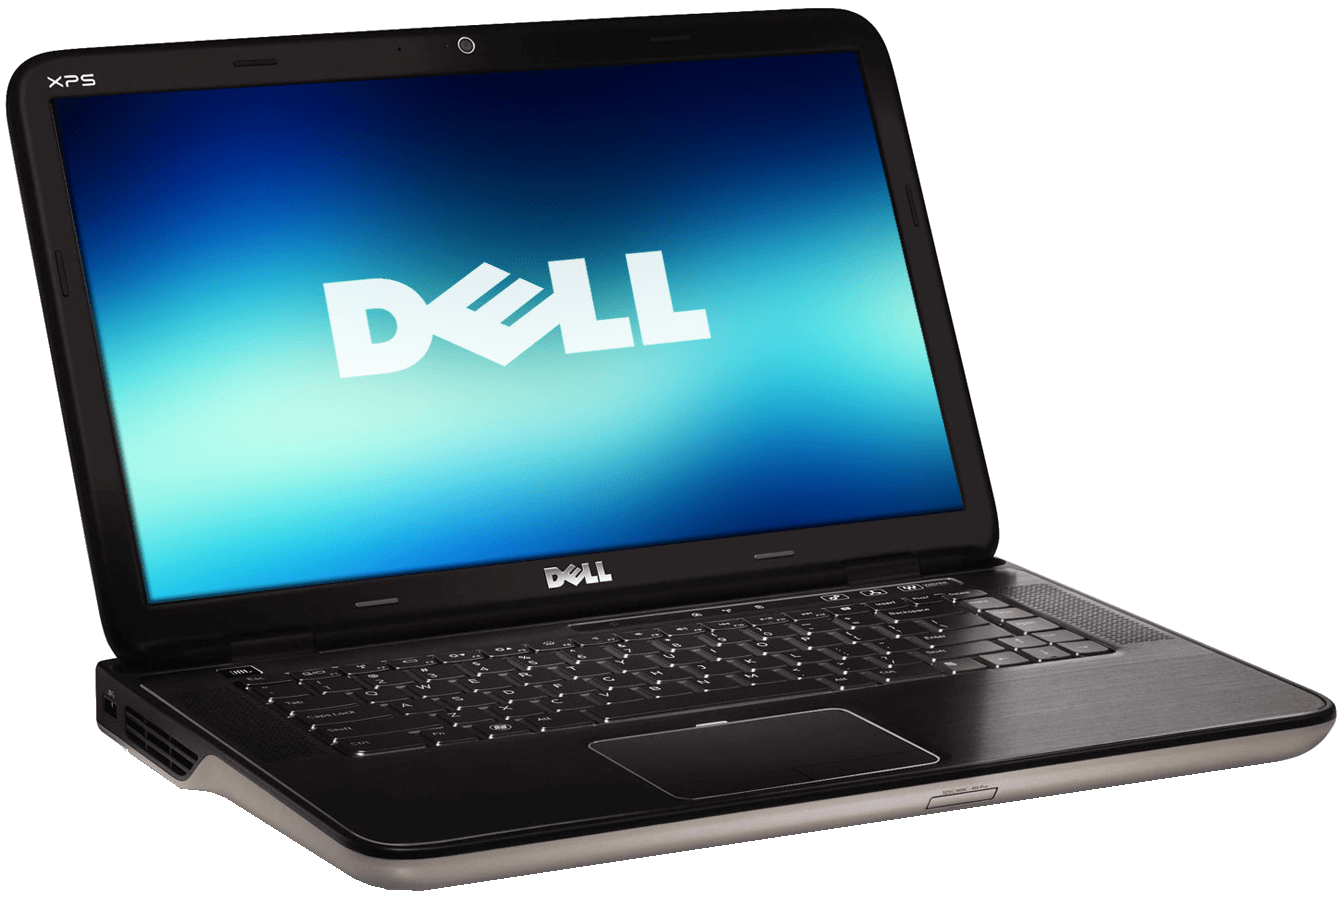 dell laptop how to open cd drive with no power